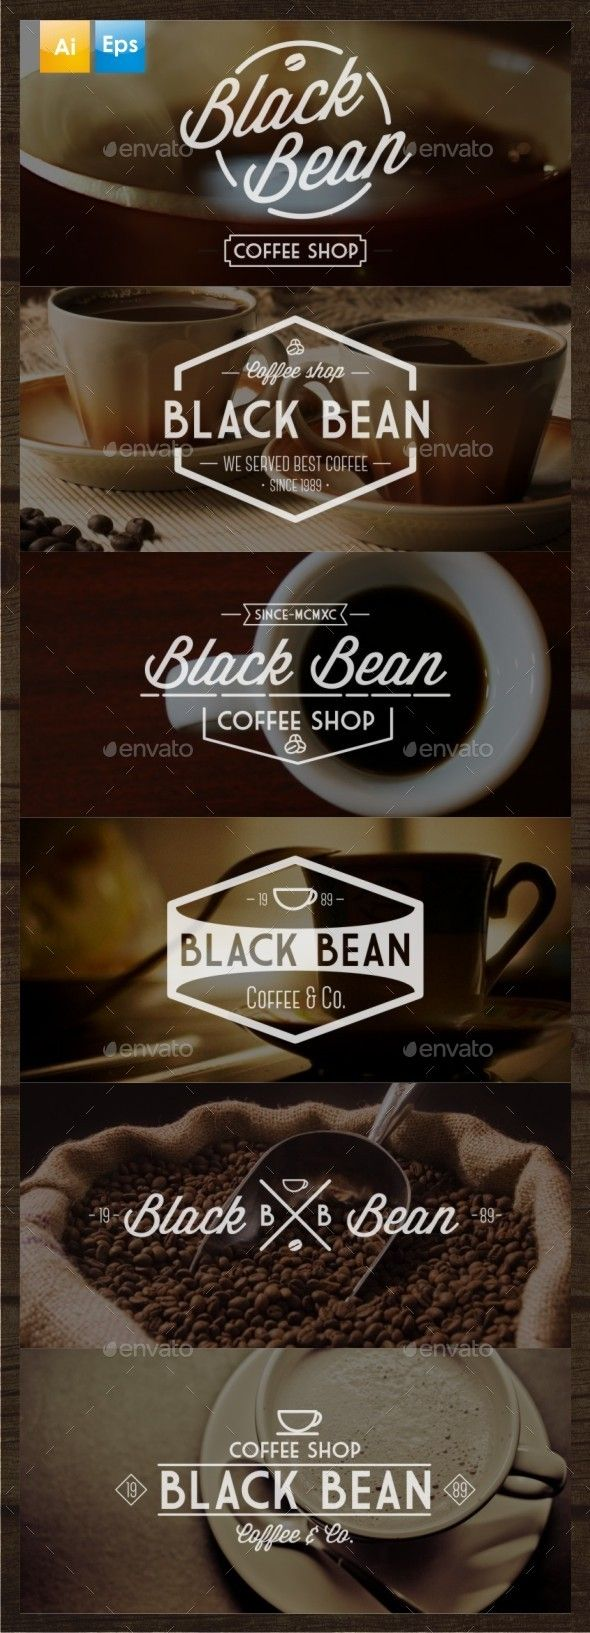 6 Vintage Coffee Logo Template that have been approached very differently. The client may want to have a look at these that might have an effect that she is looking to have on her demographic